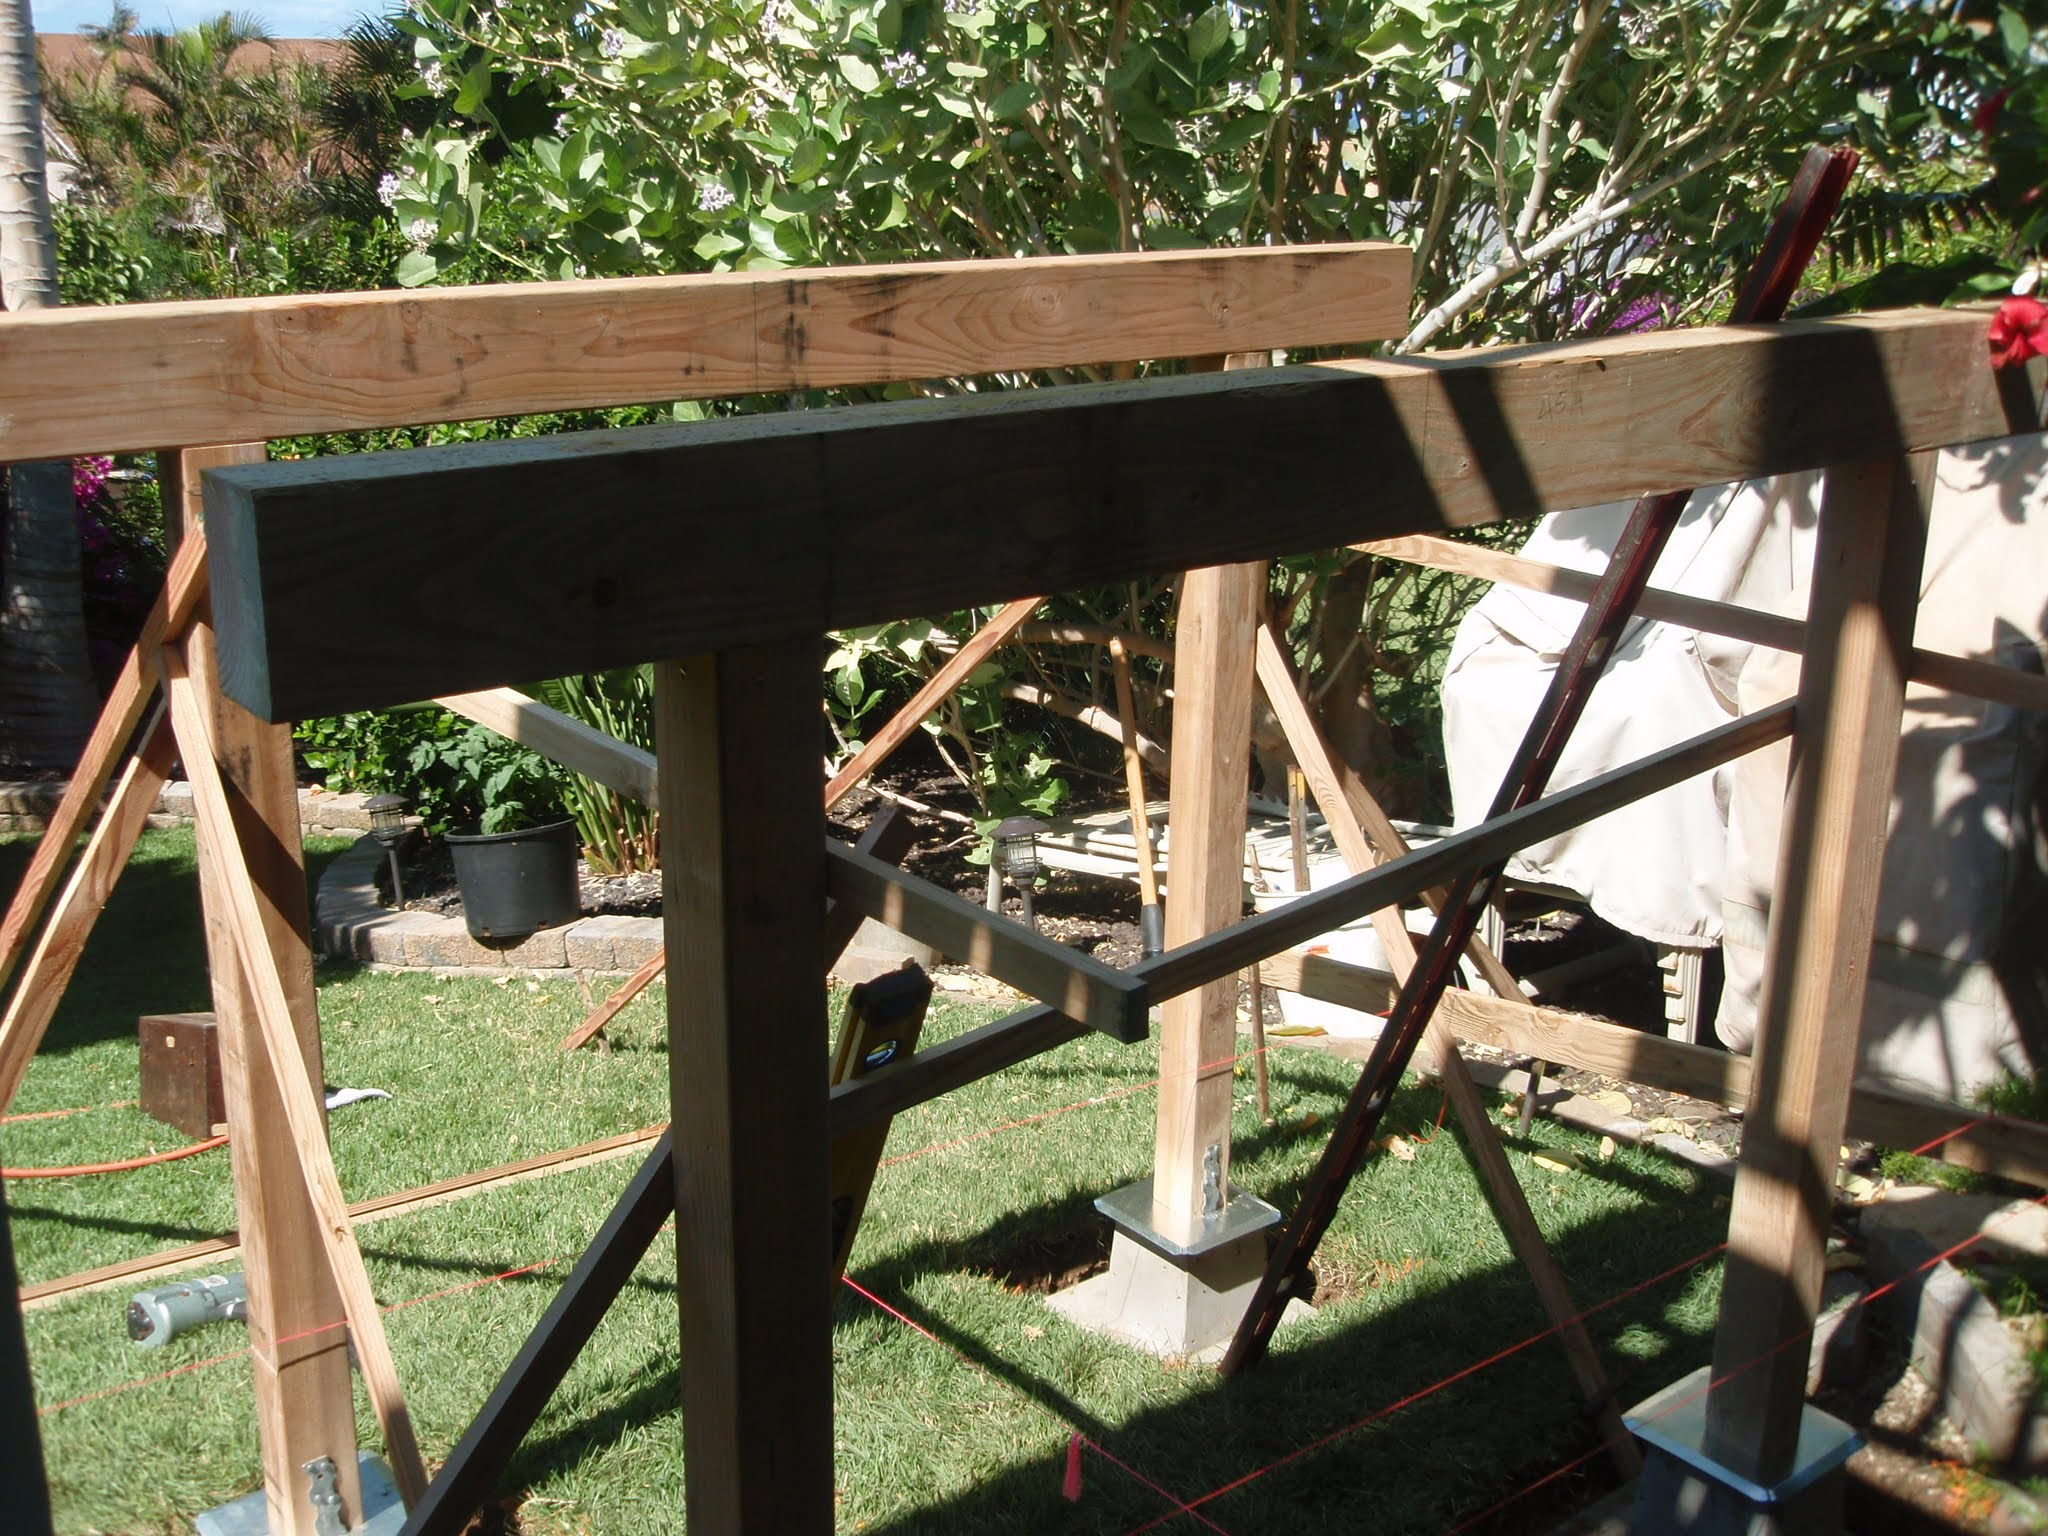 Framing for the stair landing.jpg Another MUST BE precise & level substructure